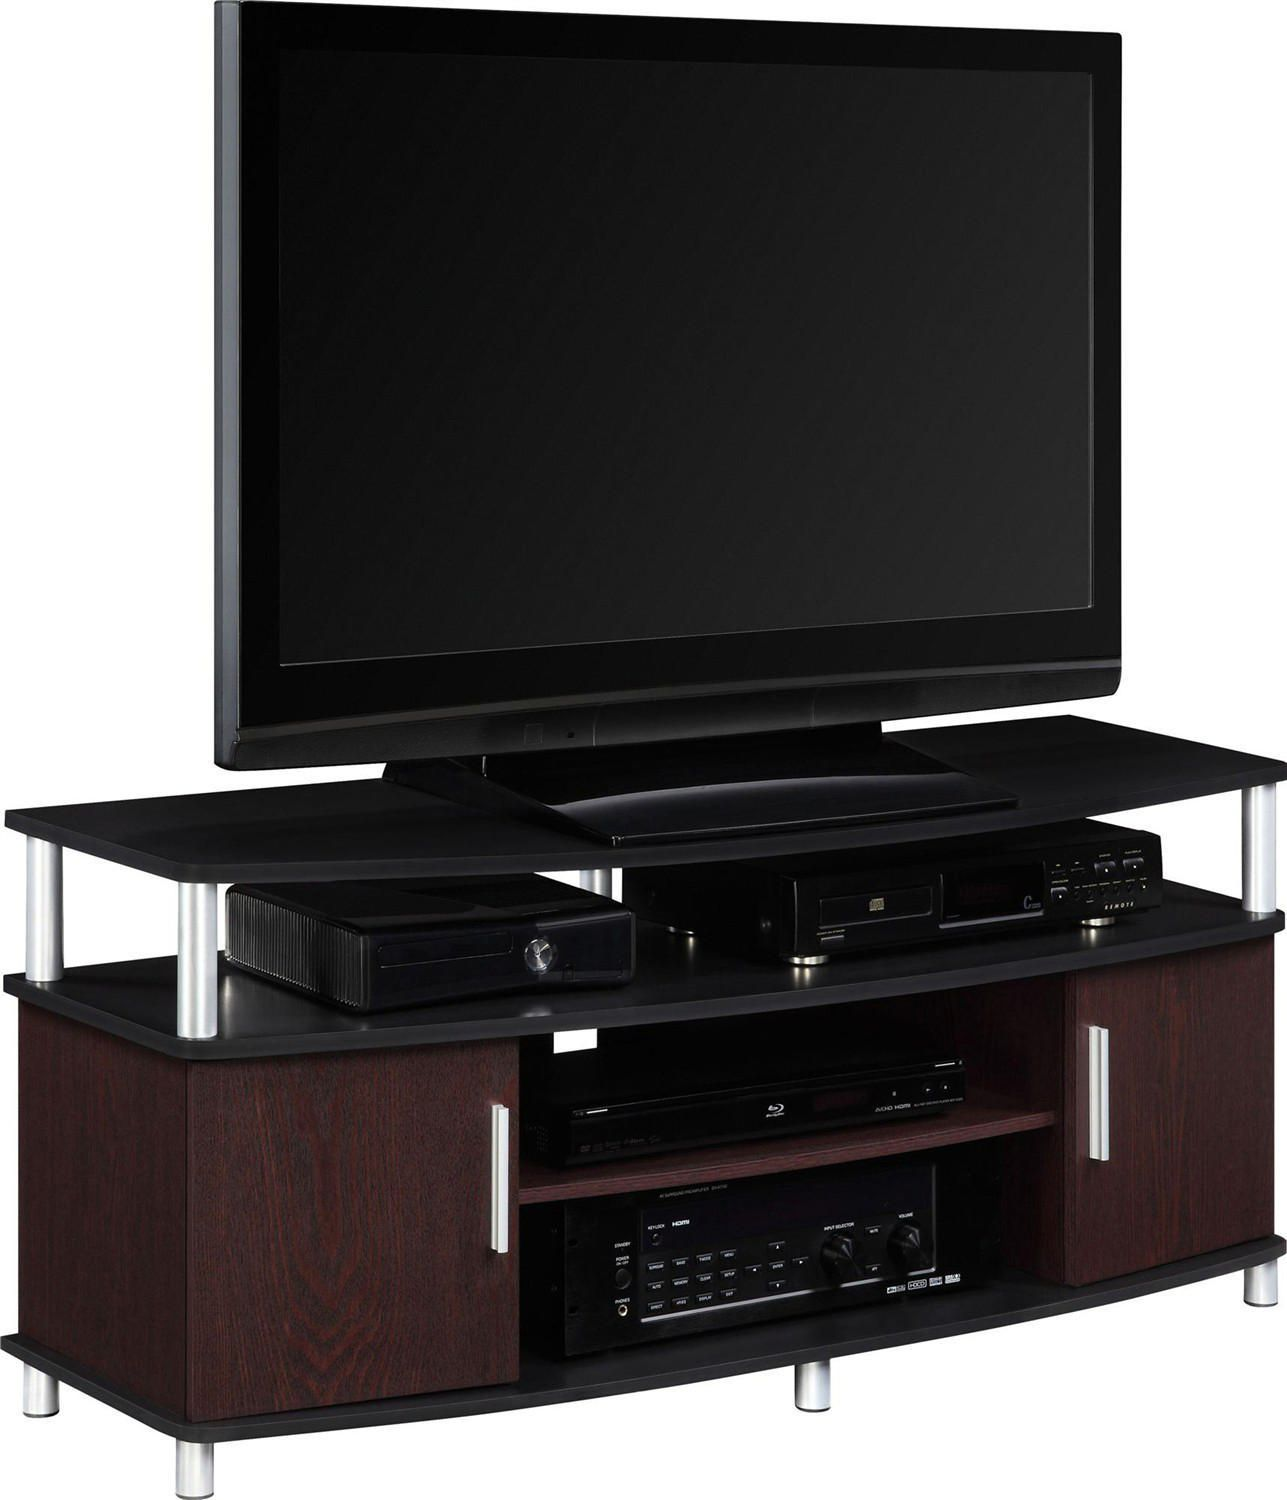 Fullsize Of 50 Inch Tv Stand